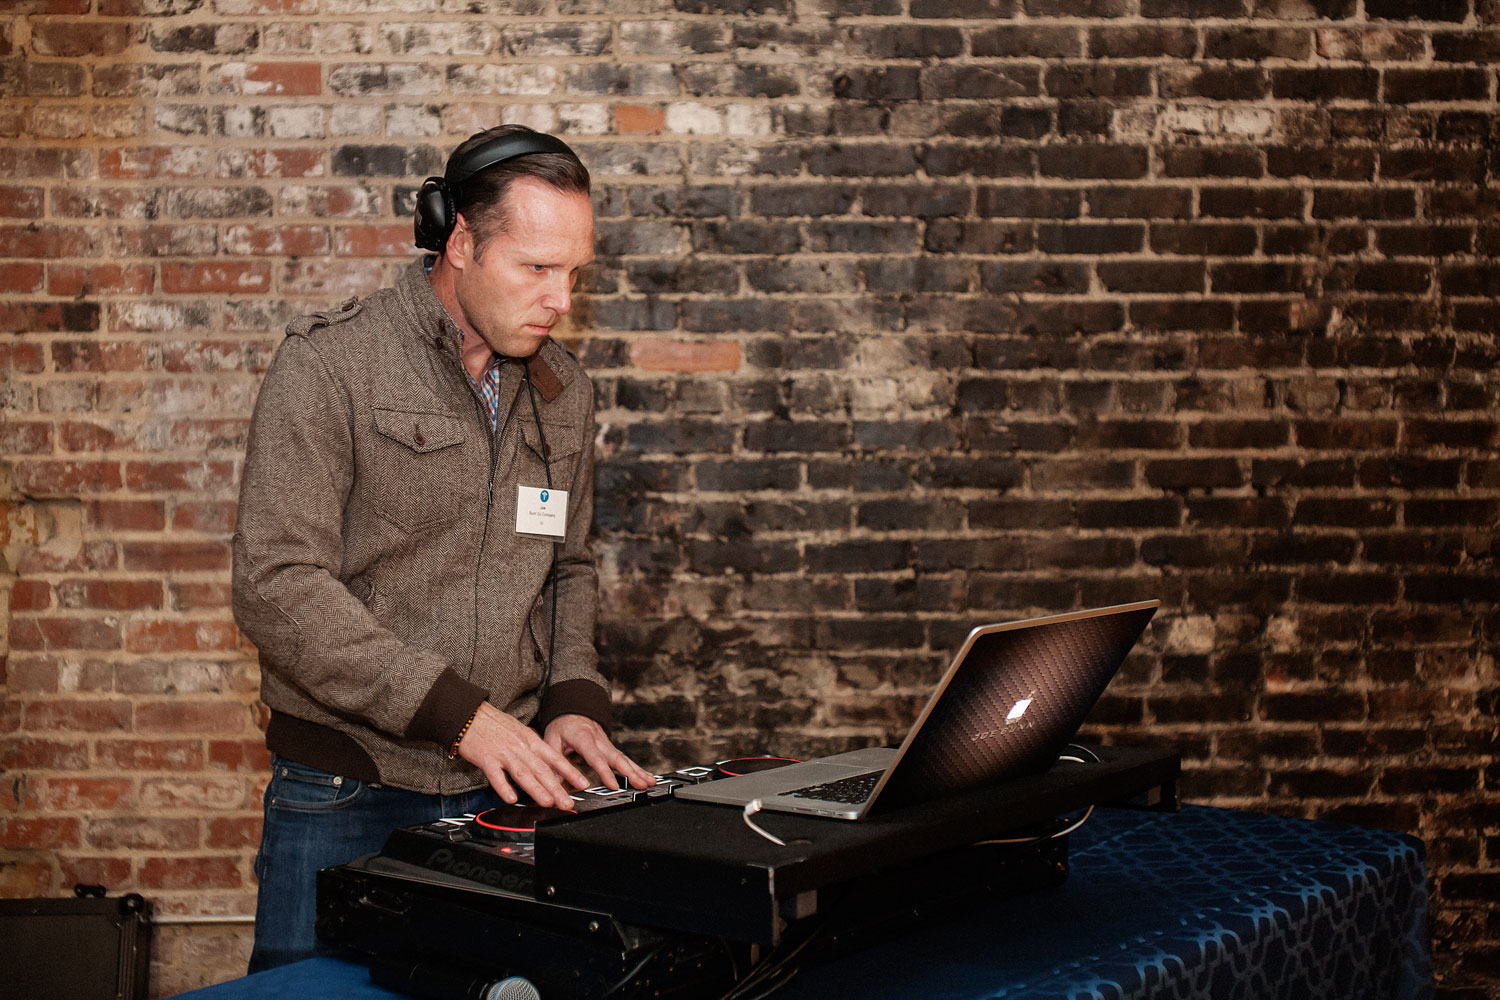 dj at networking event at stockroom